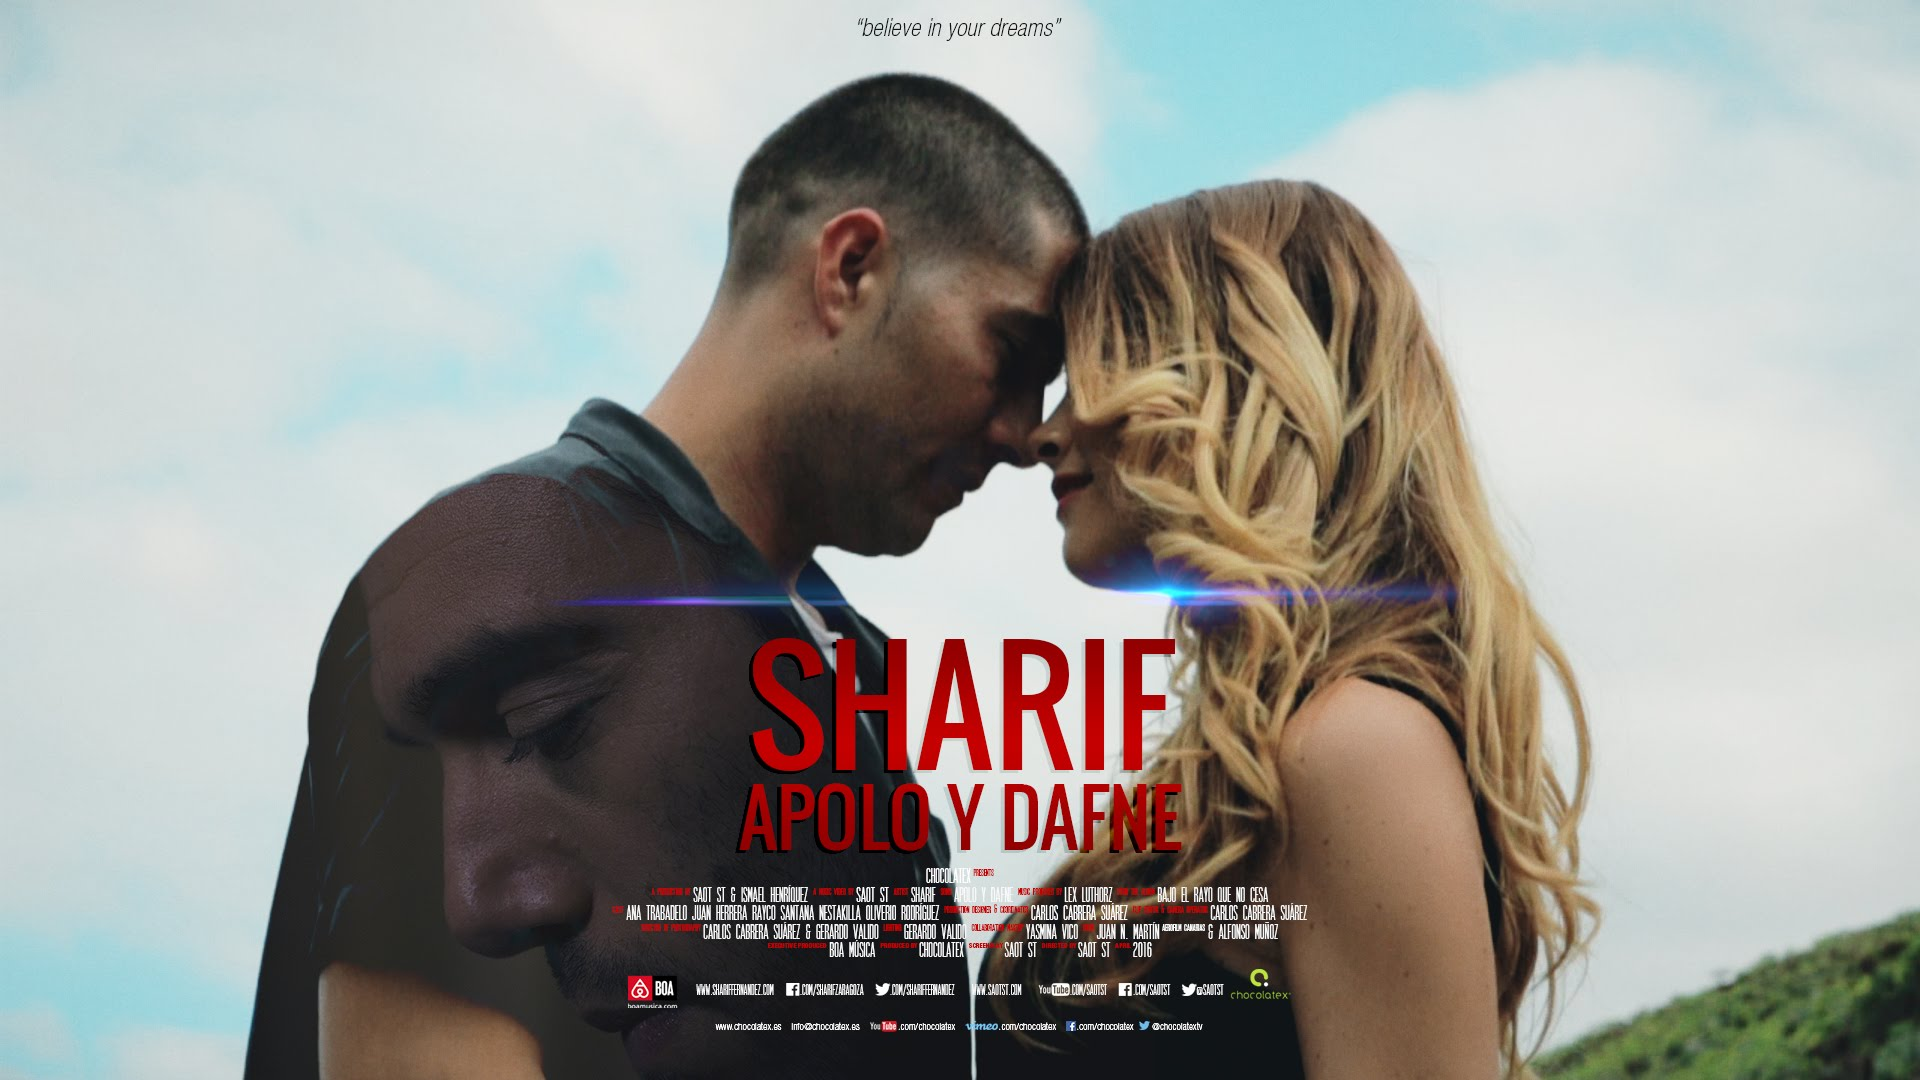 Sharif – Apolo y Dafne